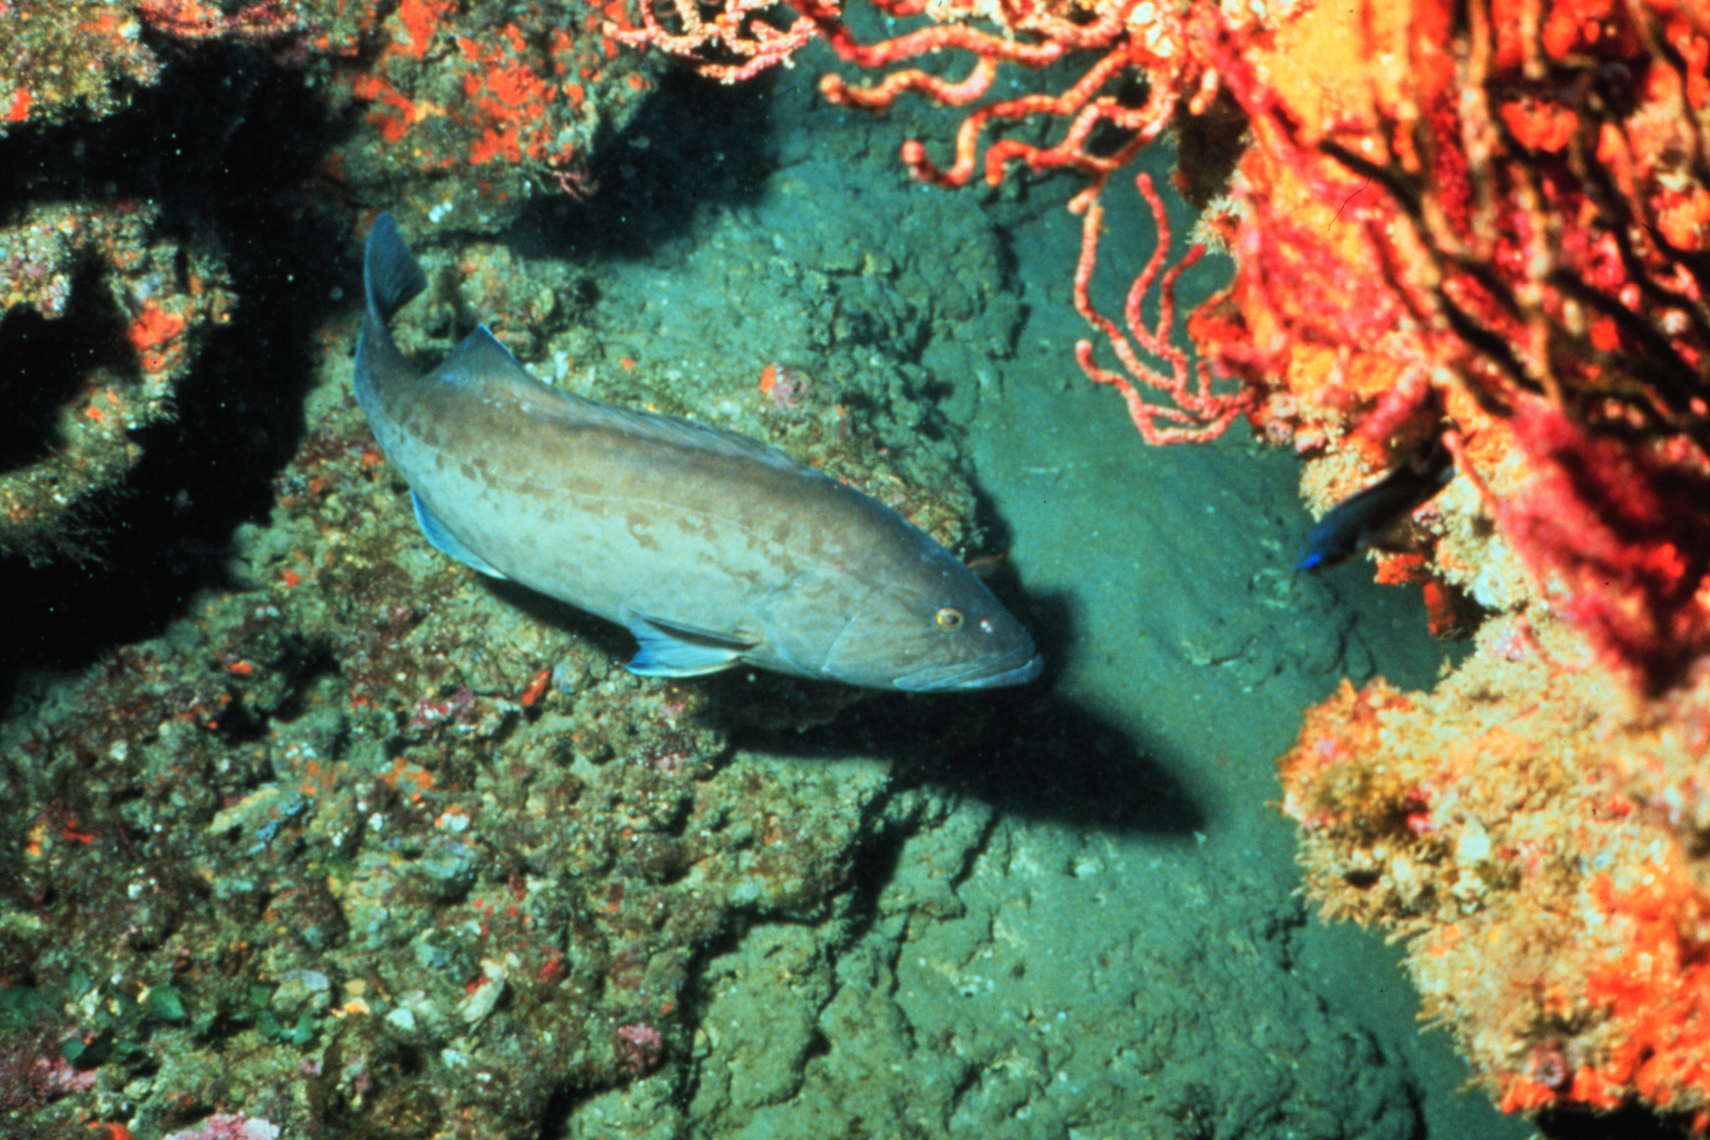 A gag grouper (fish) swims near a rocky reef with pink corals nearby.